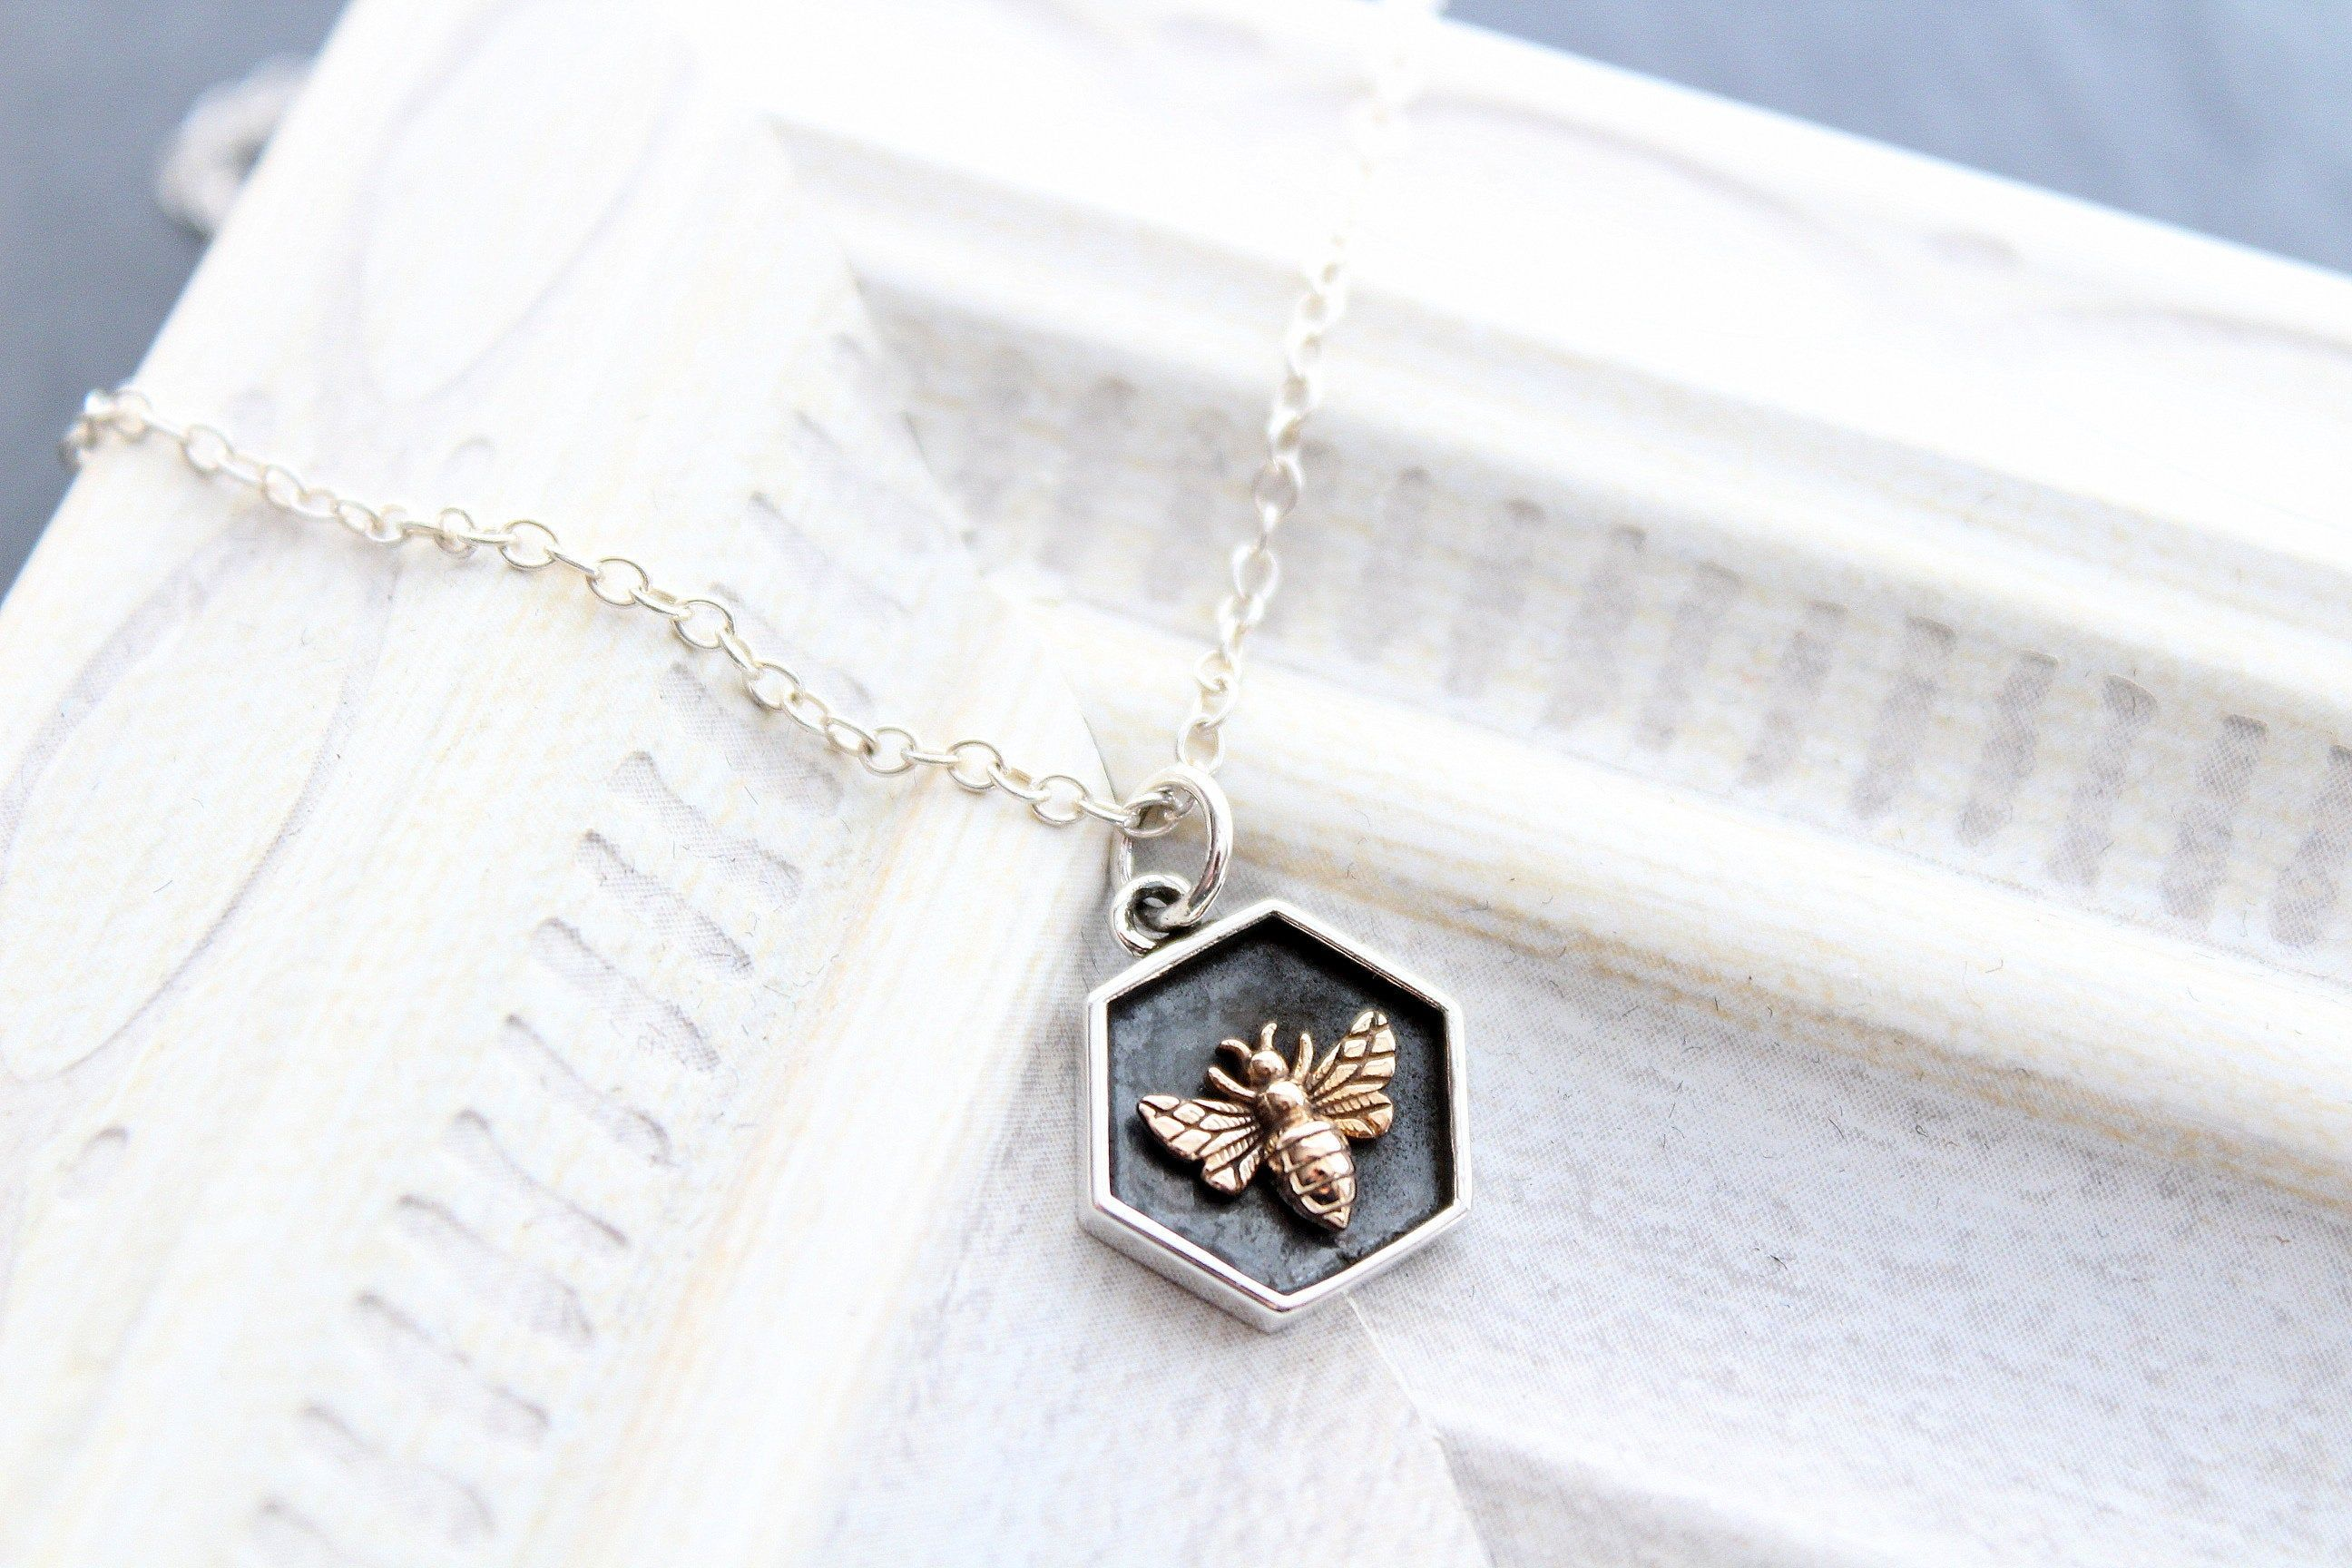 Bee necklace Honeybee jewelry Bee charm Delicate bee chain Small bee necklace Dainty gift Sterling silver bee pendant on chain